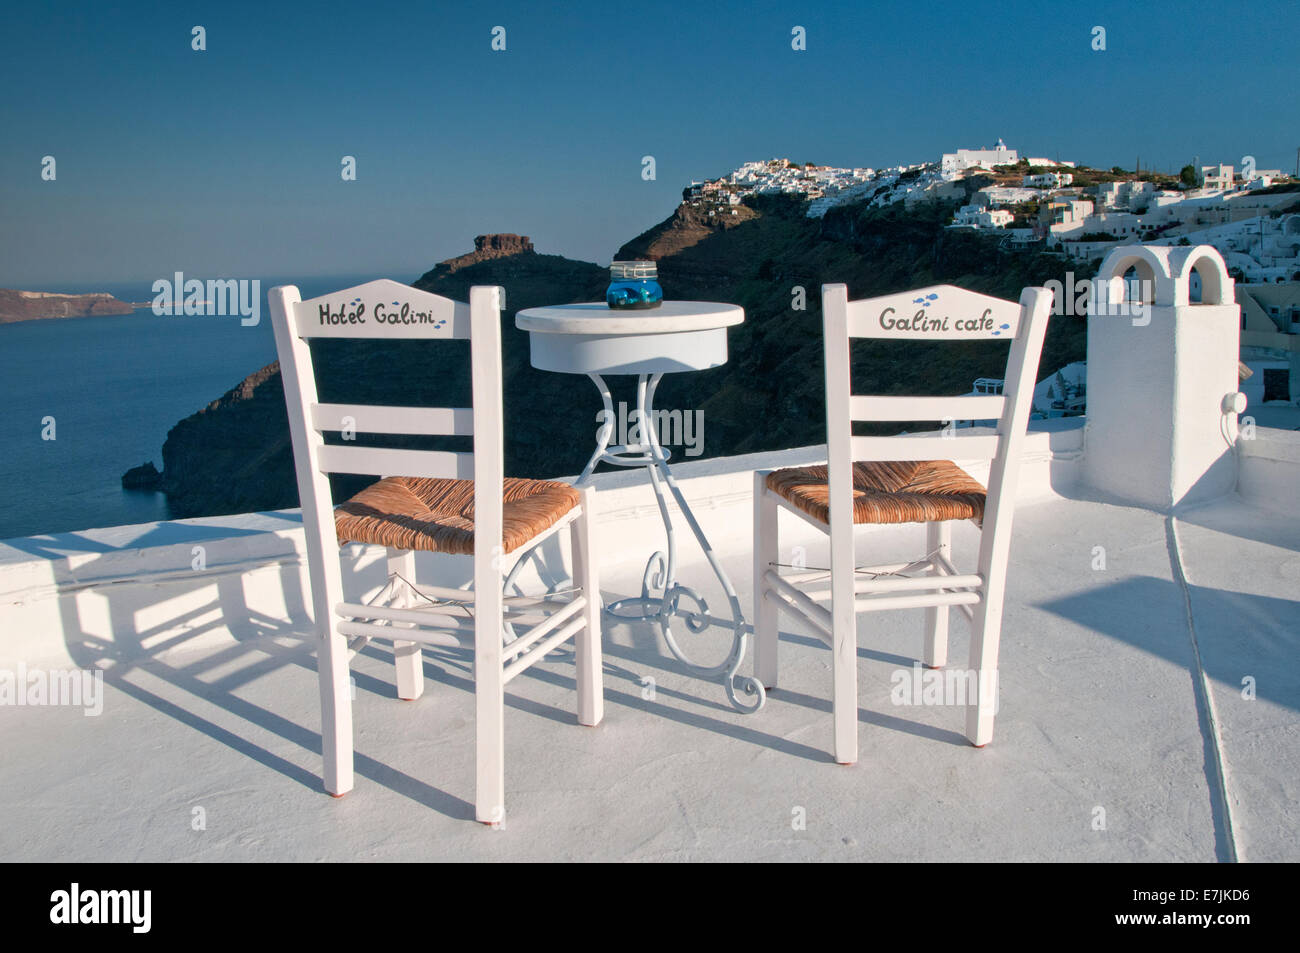 Hotel Galini Table & Chairs overlooking The Caldera,  Firostefani, Santorini, Cyclades, Greek Islands, Greece, - Stock Image